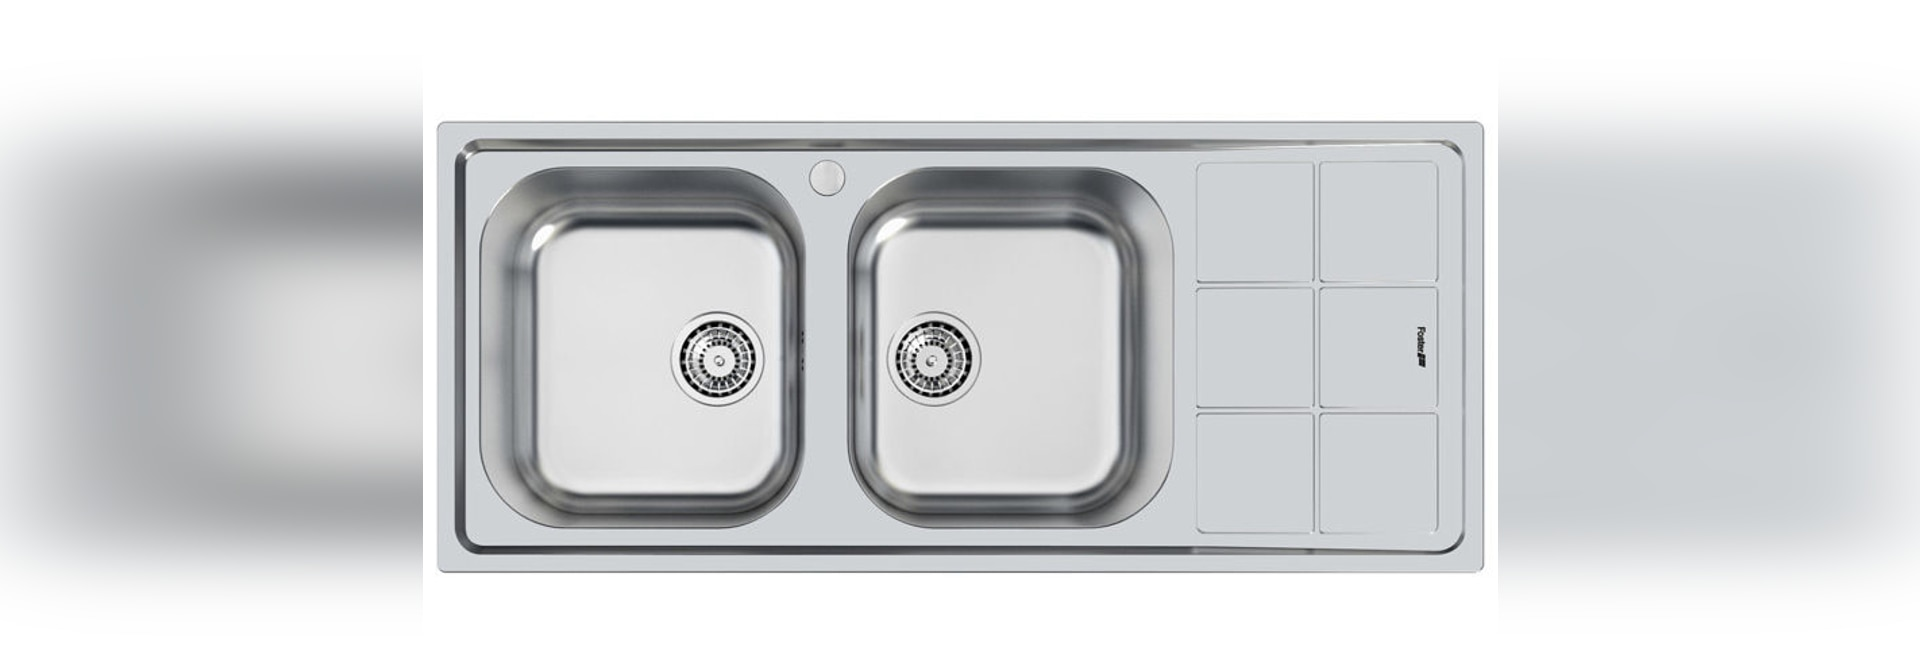 new  2 bowl kitchen sink by foster new  2 bowl kitchen sink by foster   foster  rh   trends archiexpo com